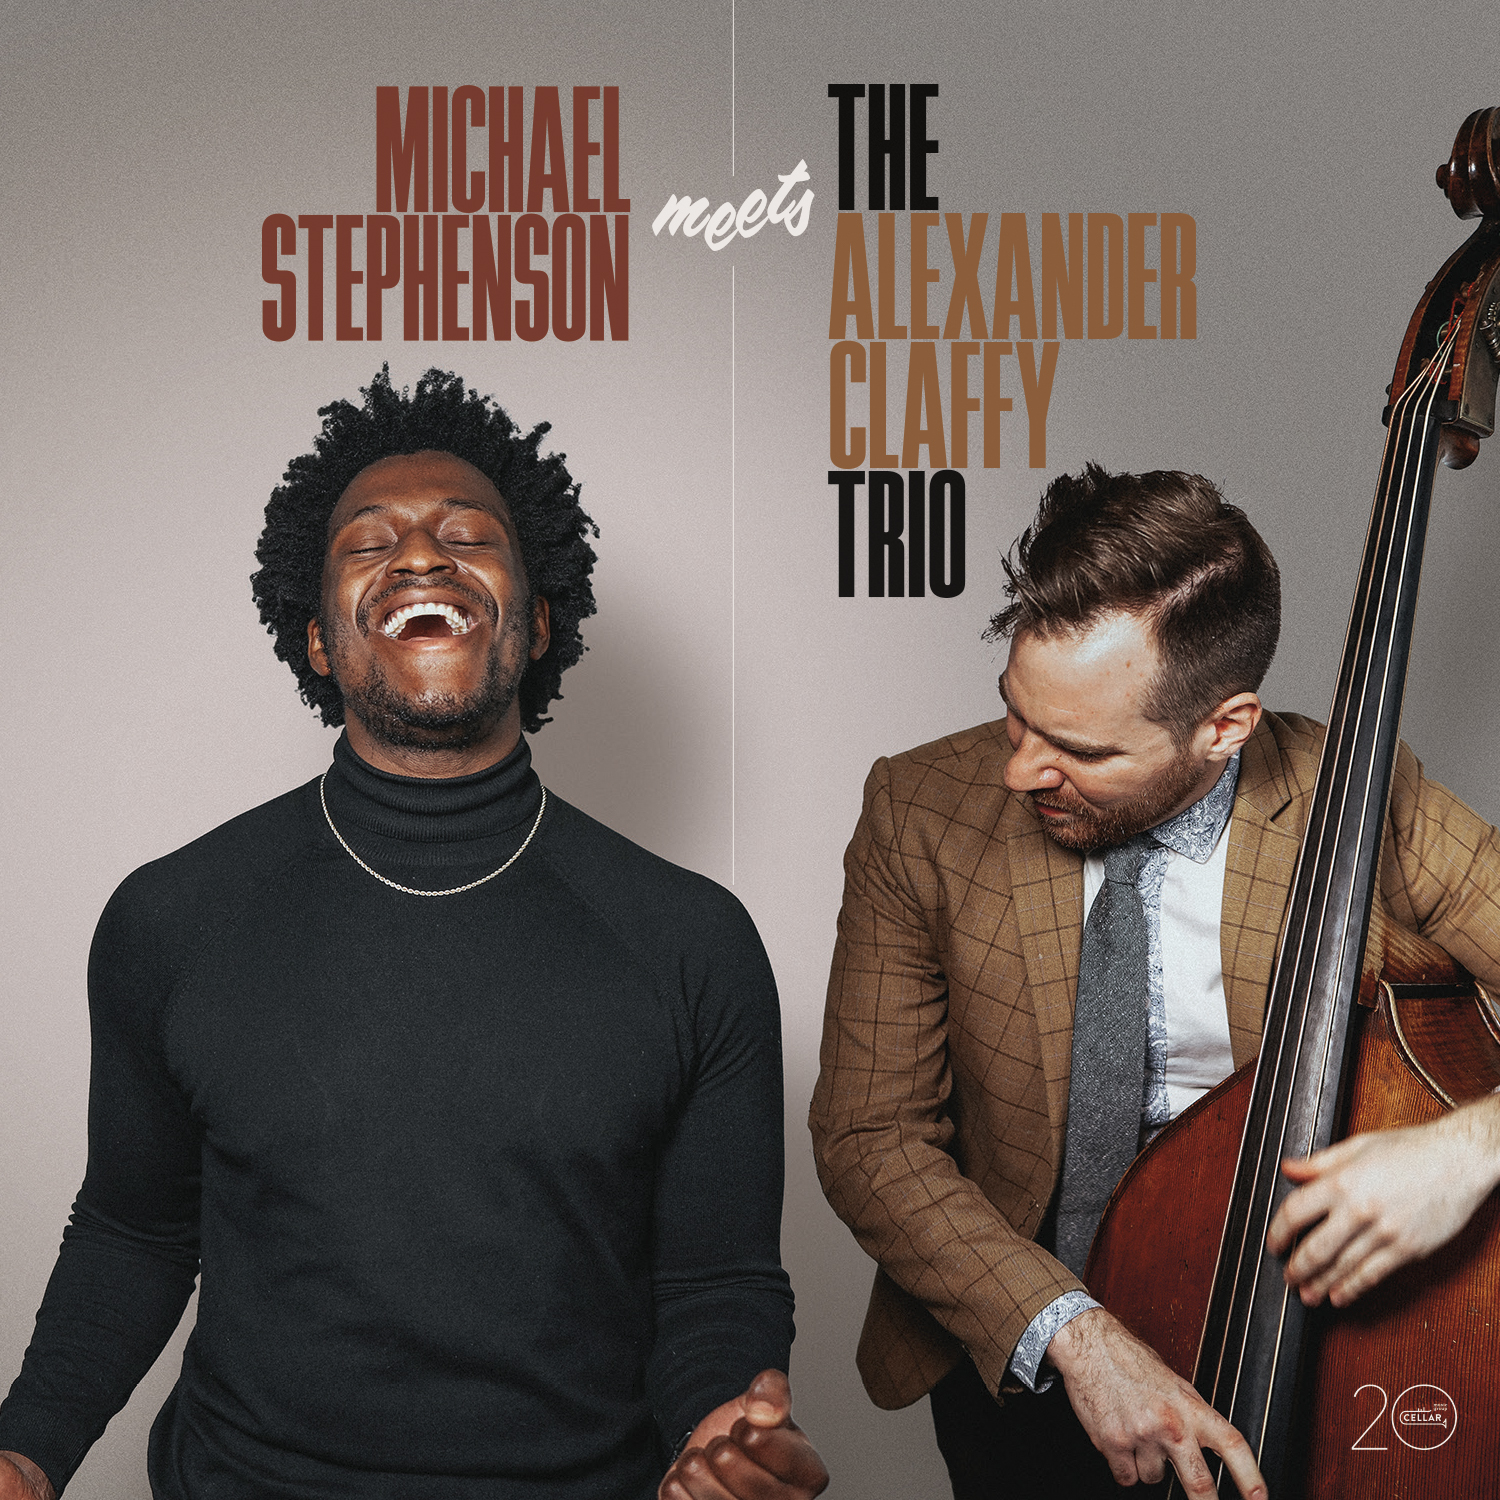 REVIEW: Michael Stephenson Meets The Alexander Claffy Trio – Making A Scene